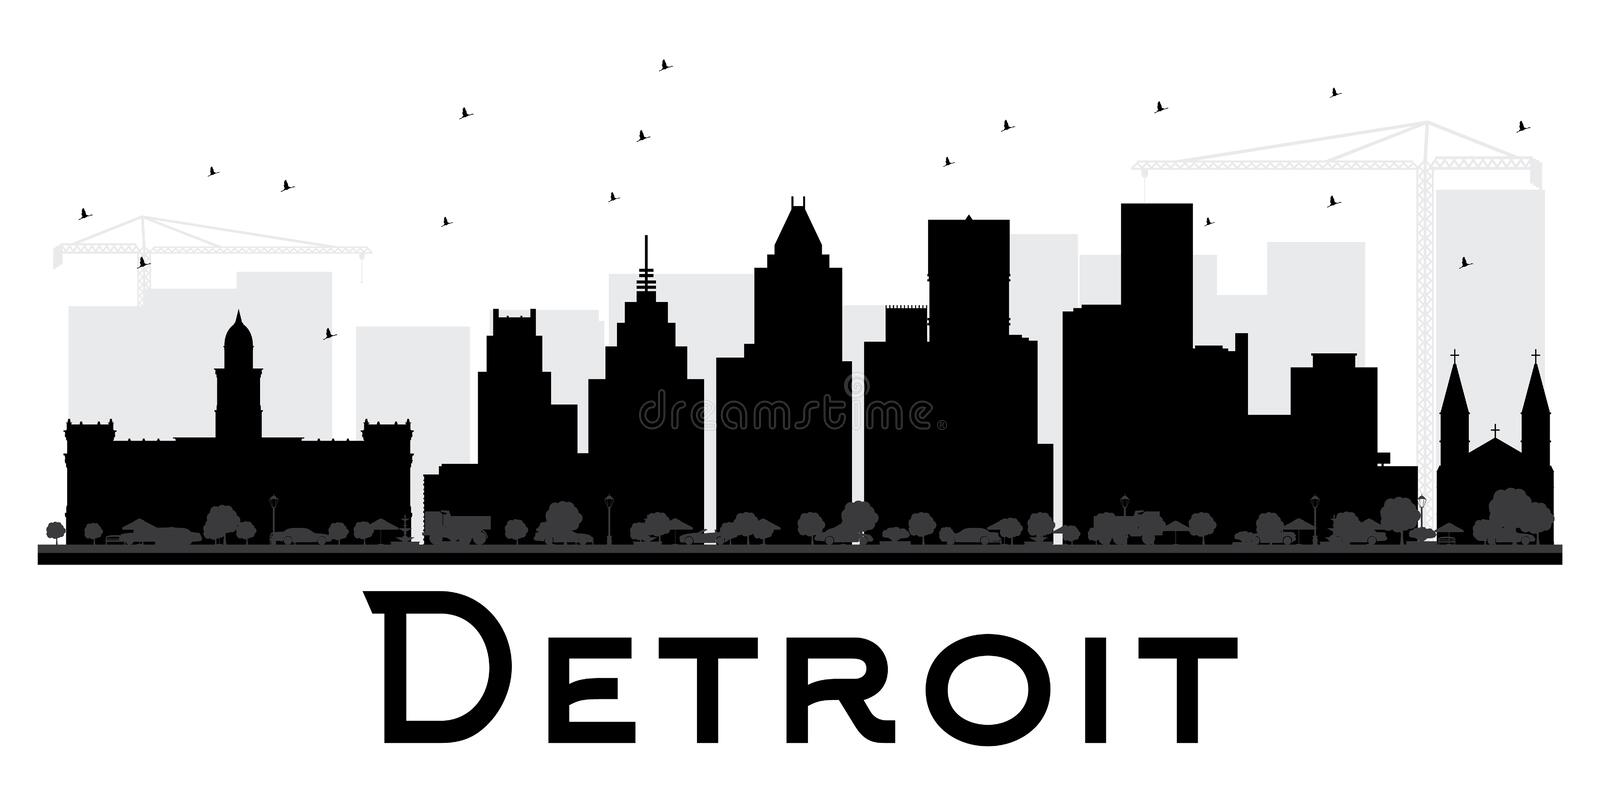 detroit city skyline black and white silhouette stock vector rh dreamstime com detroit city skyline vector detroit skyline outline vector